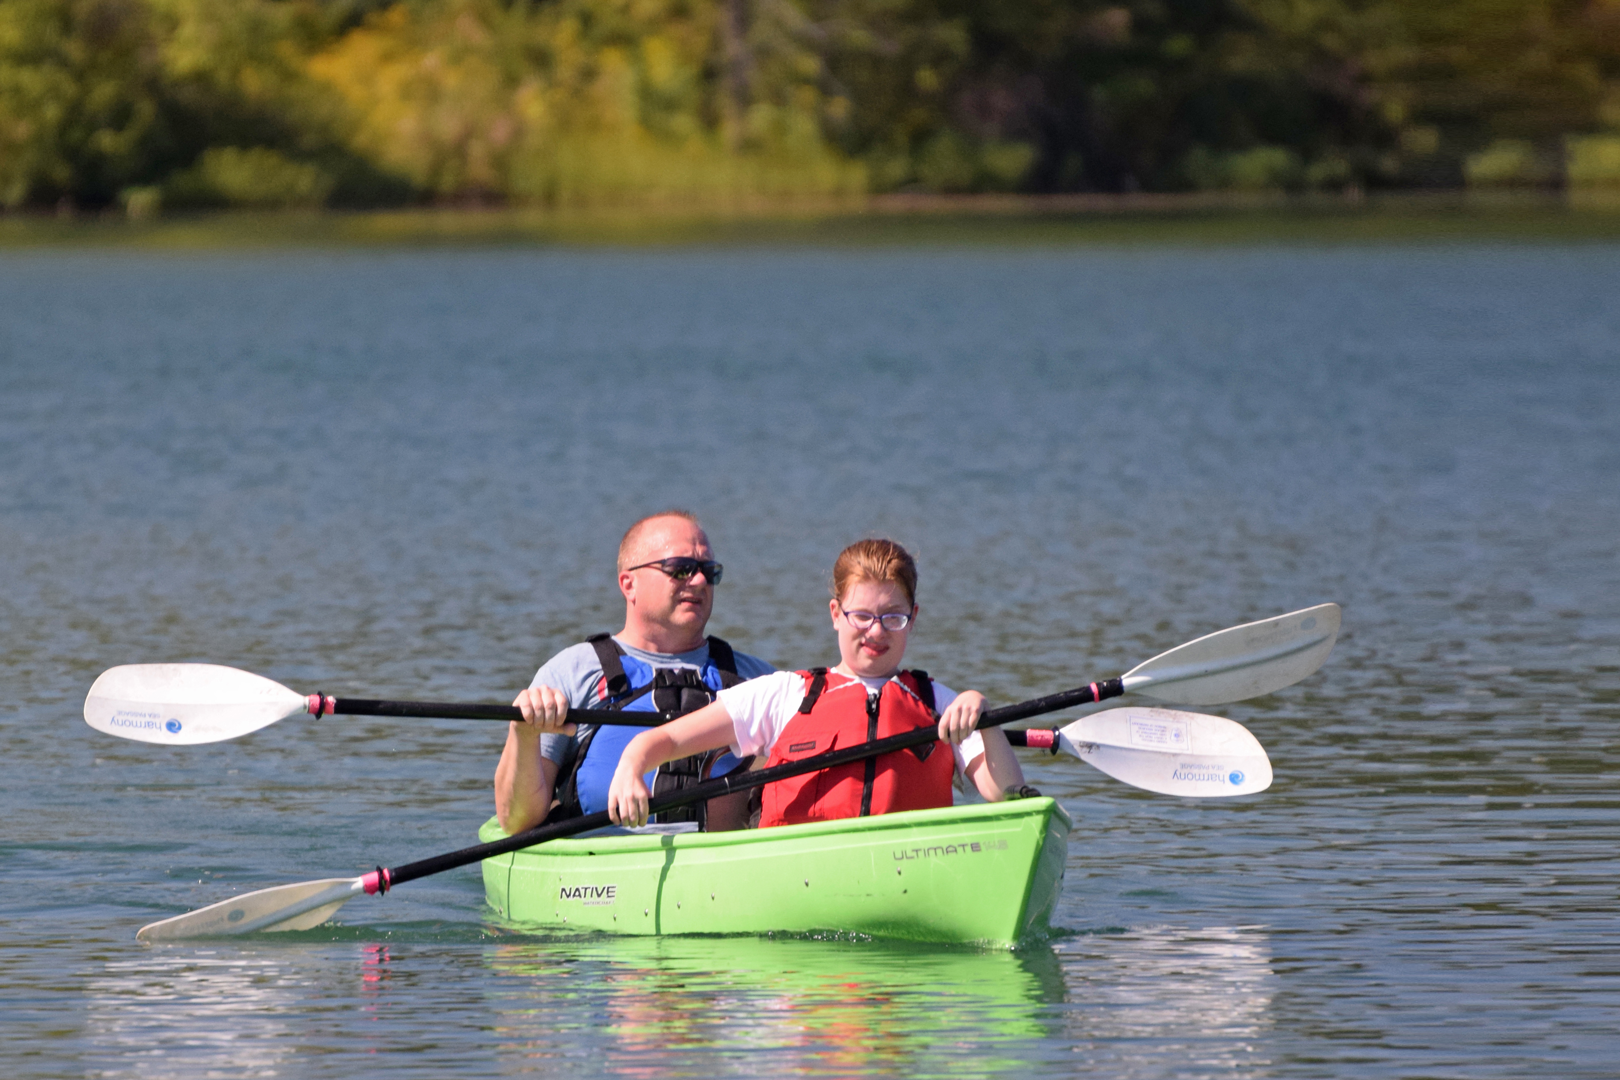 Canoeists on lake for an Outdoor Adaptive Adventures program at Prairie Oaks.